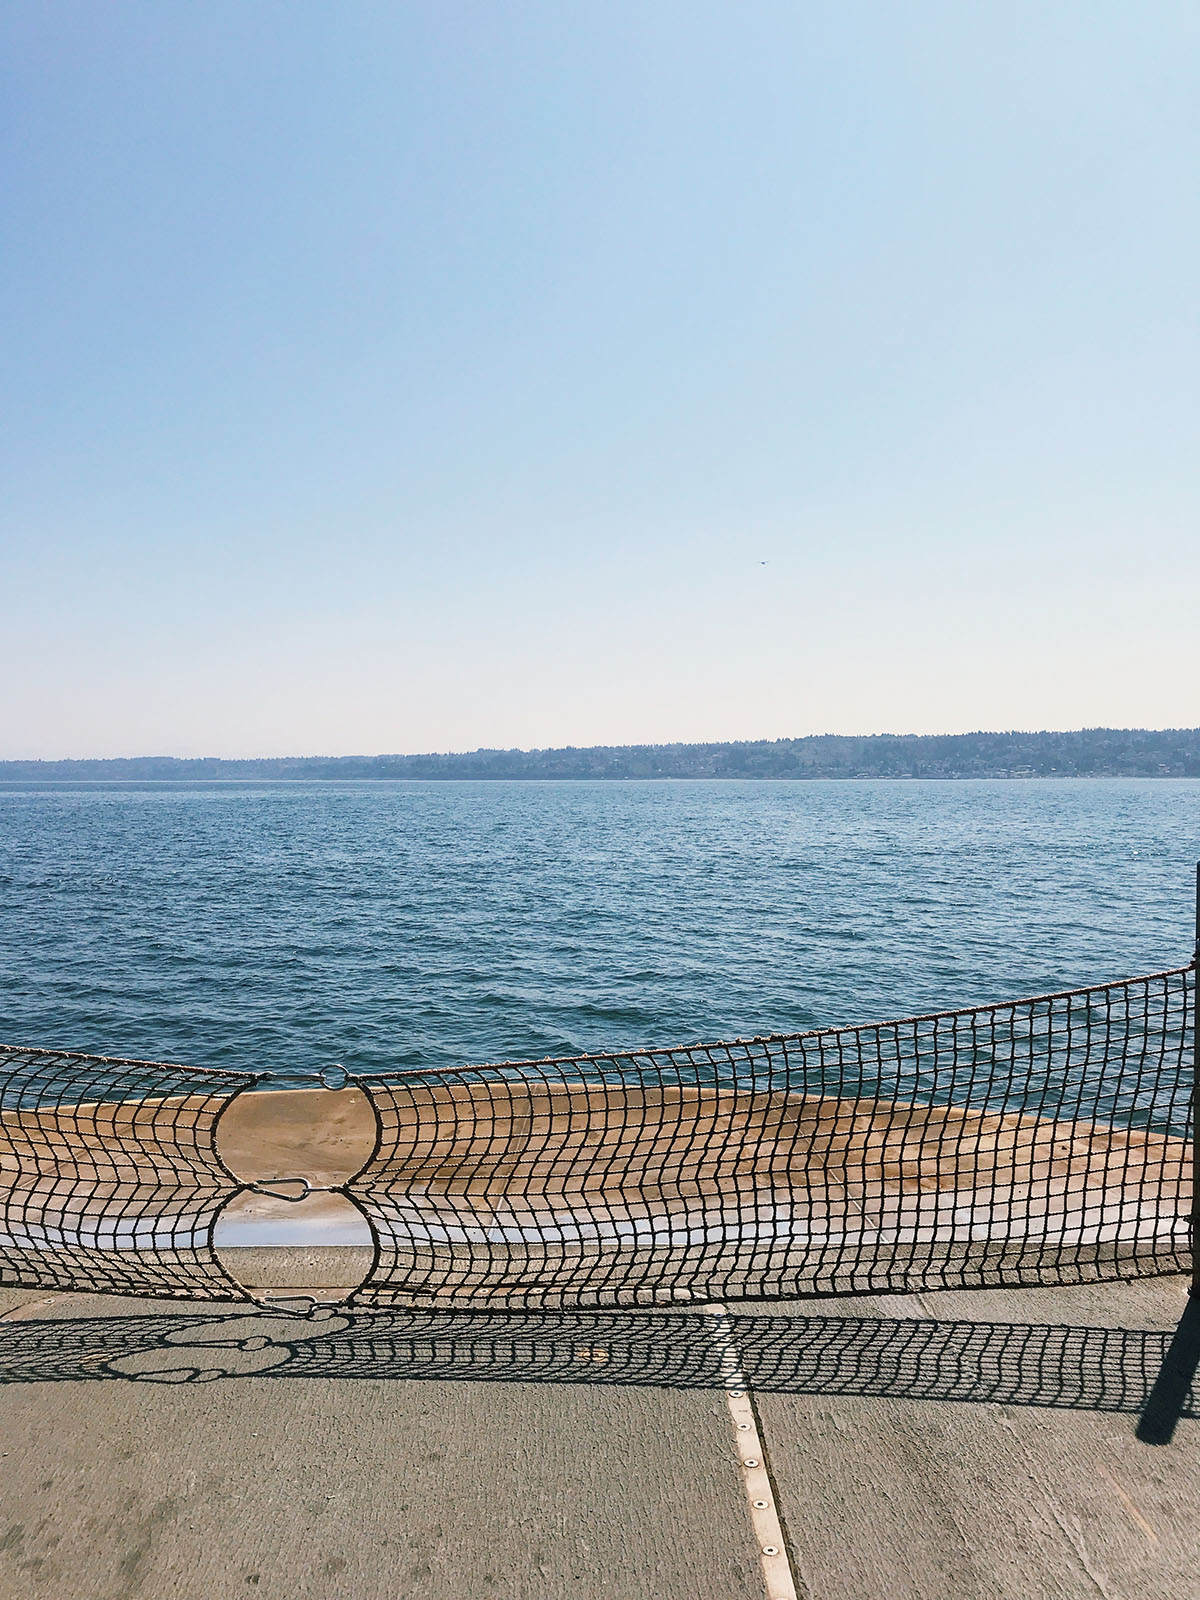 whidbey island ferry seattle wa